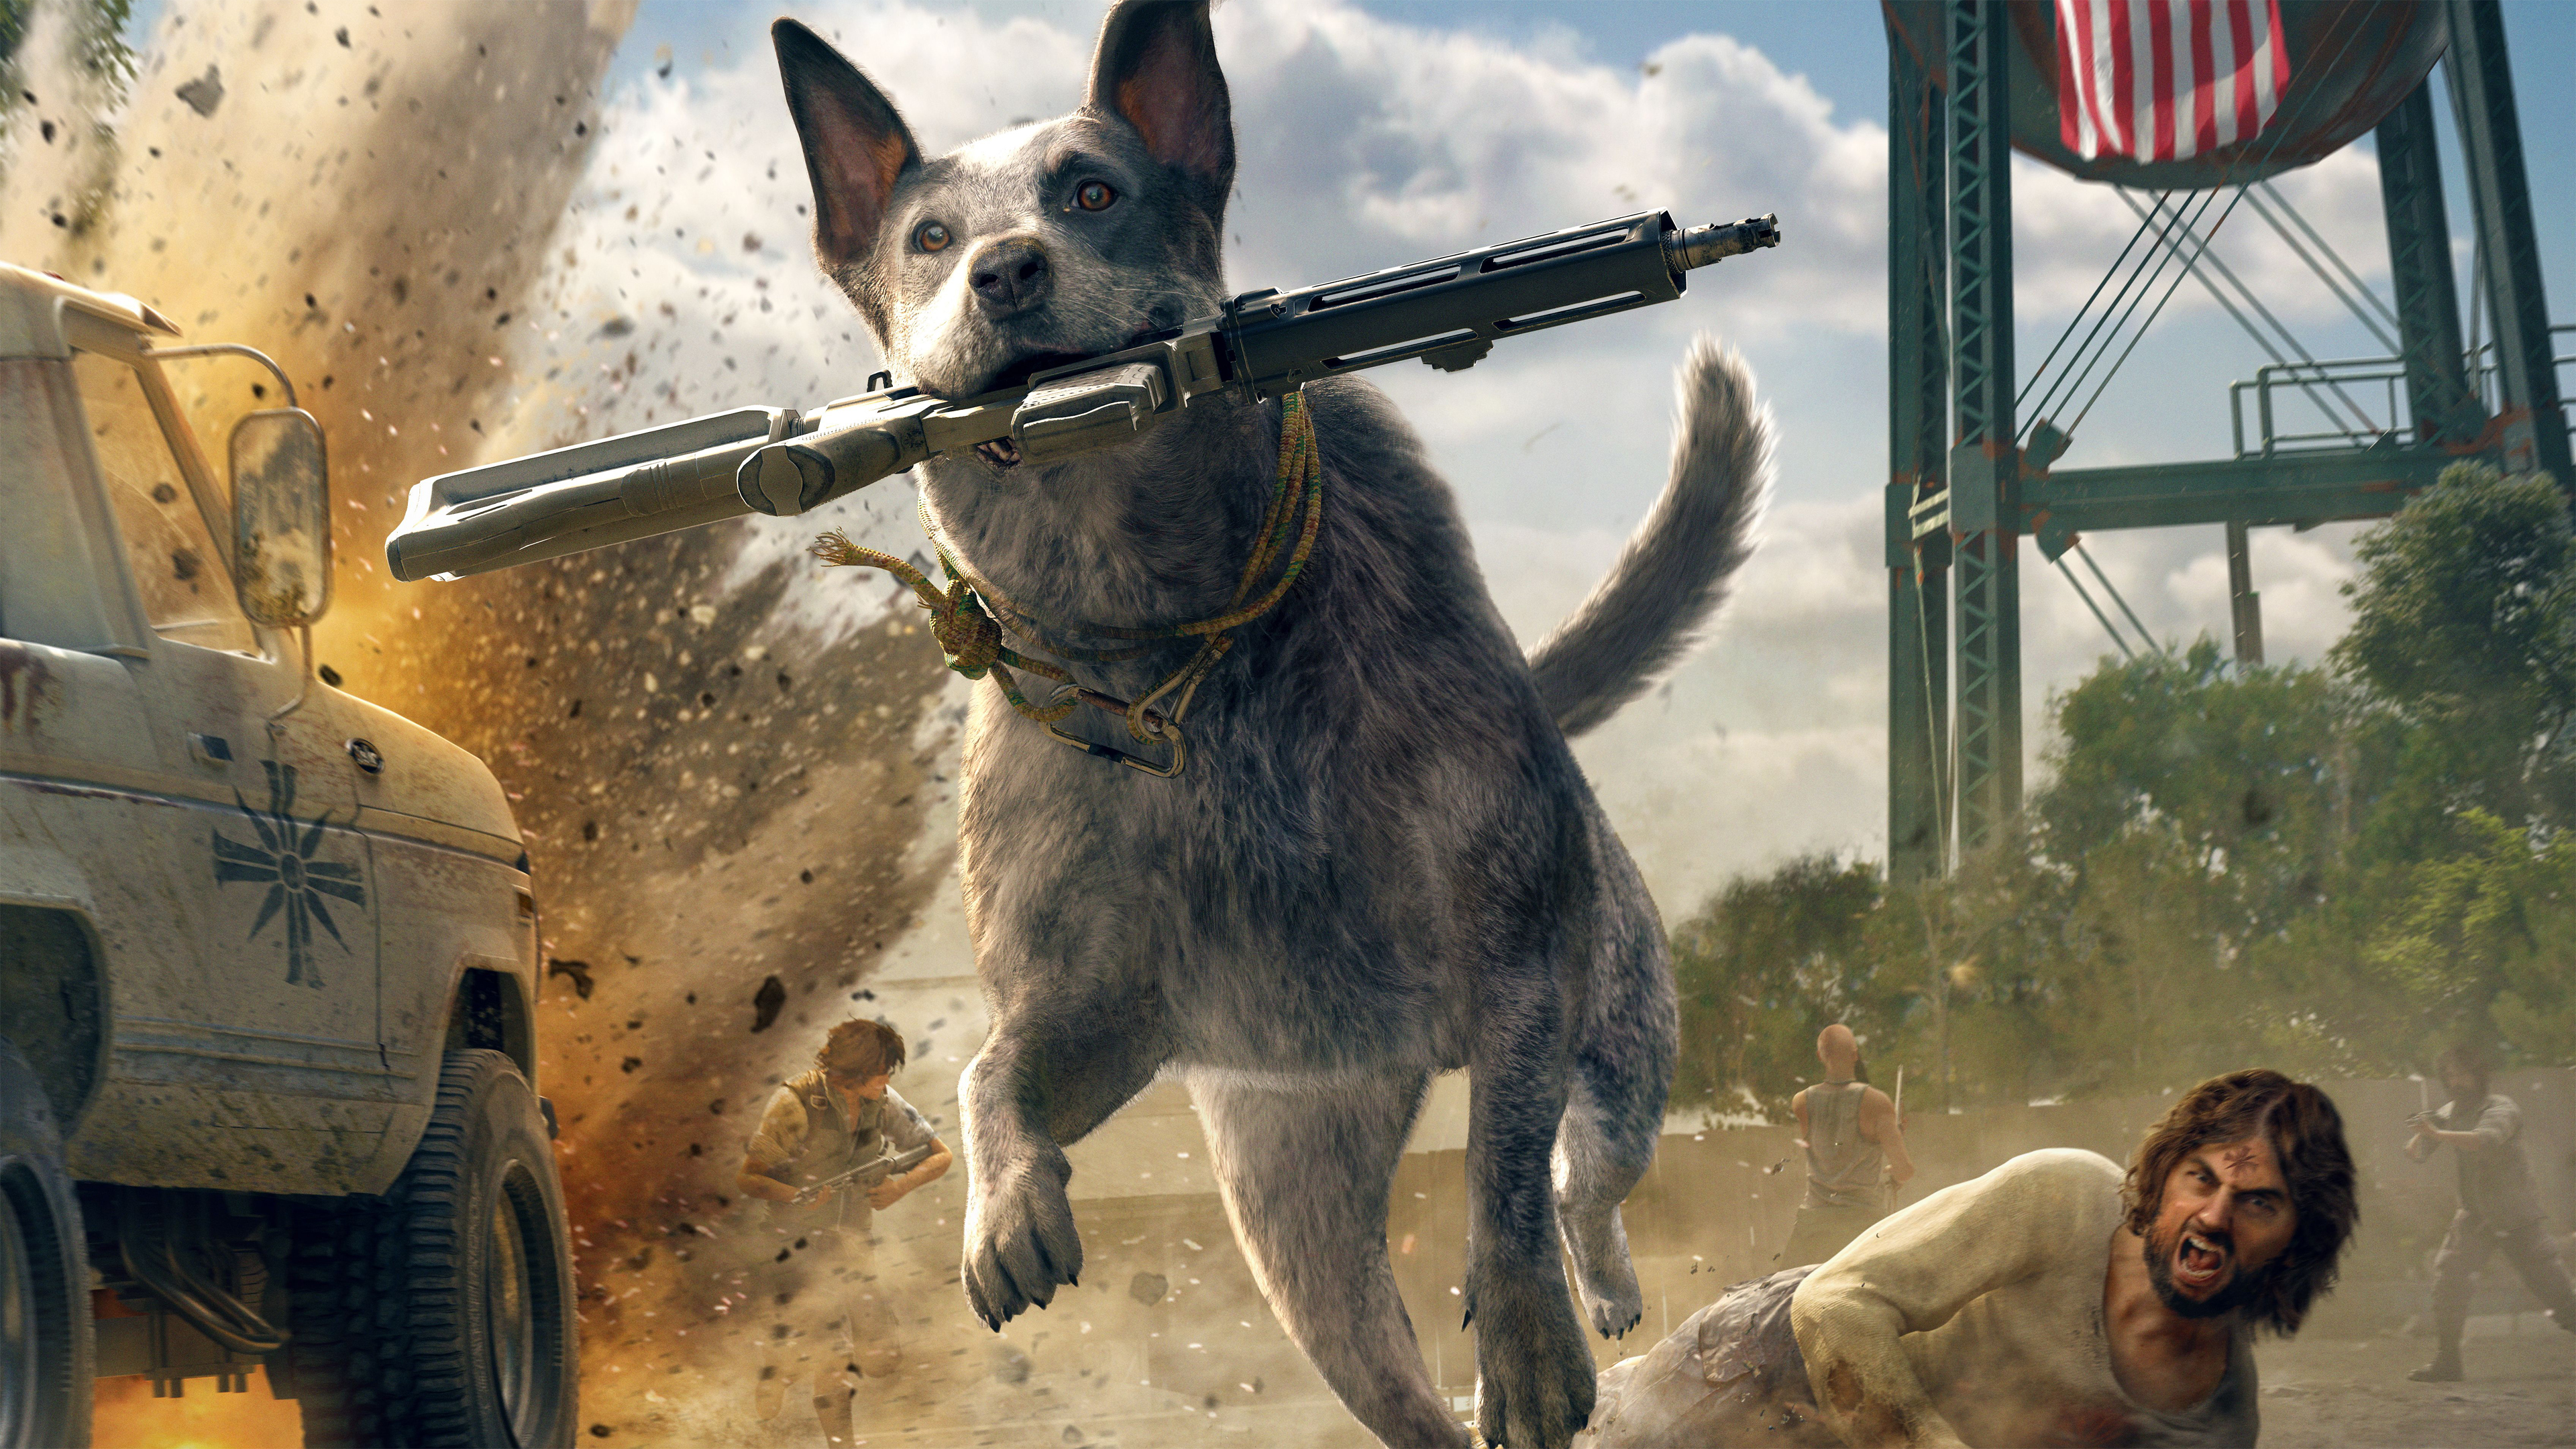 Anime Zombie Girl Wallpaper Boomer Far Cry 5 Ps4wallpapers Com